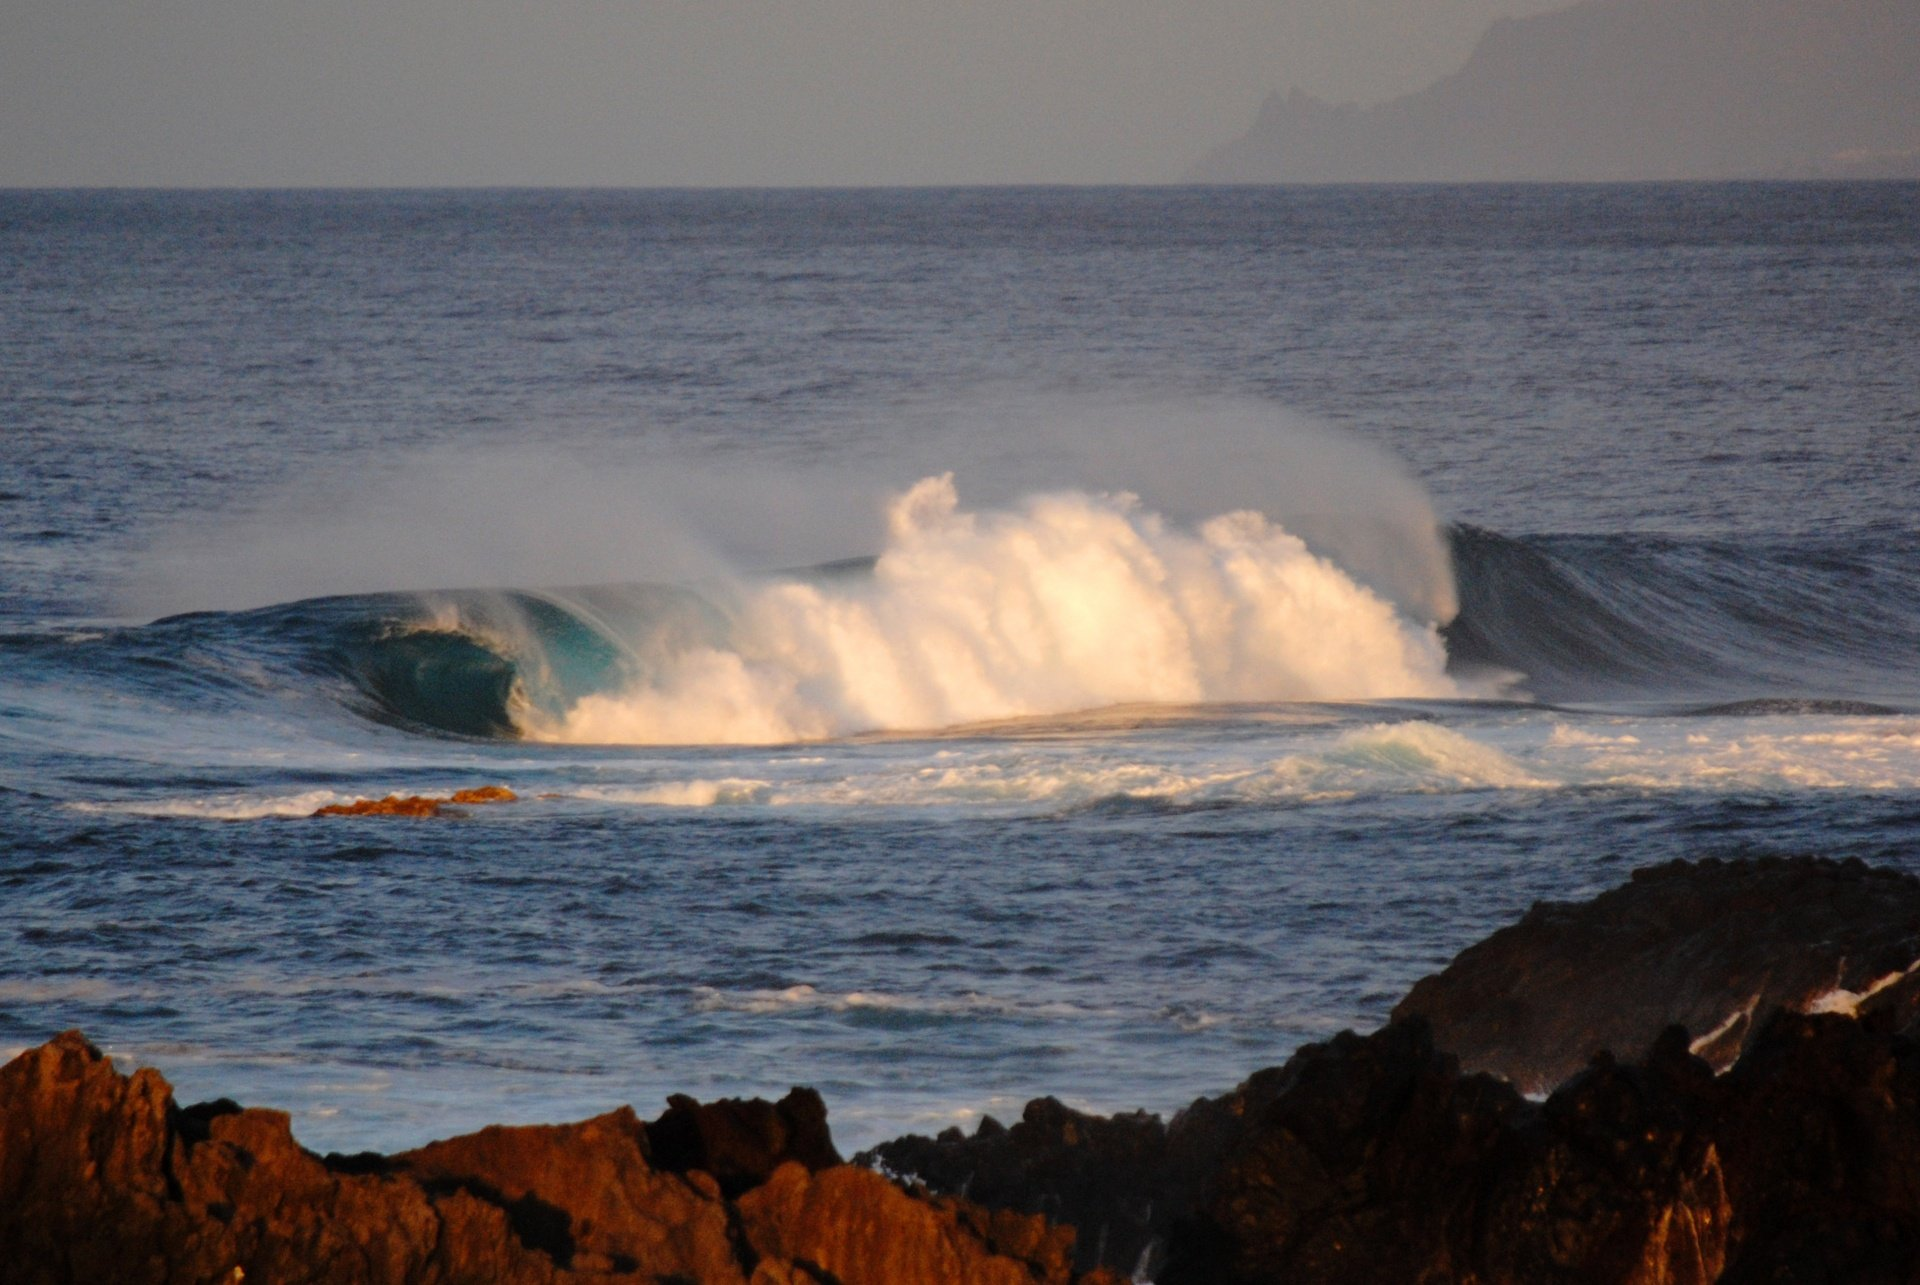 Douglas Joergens's photo of La Caleta